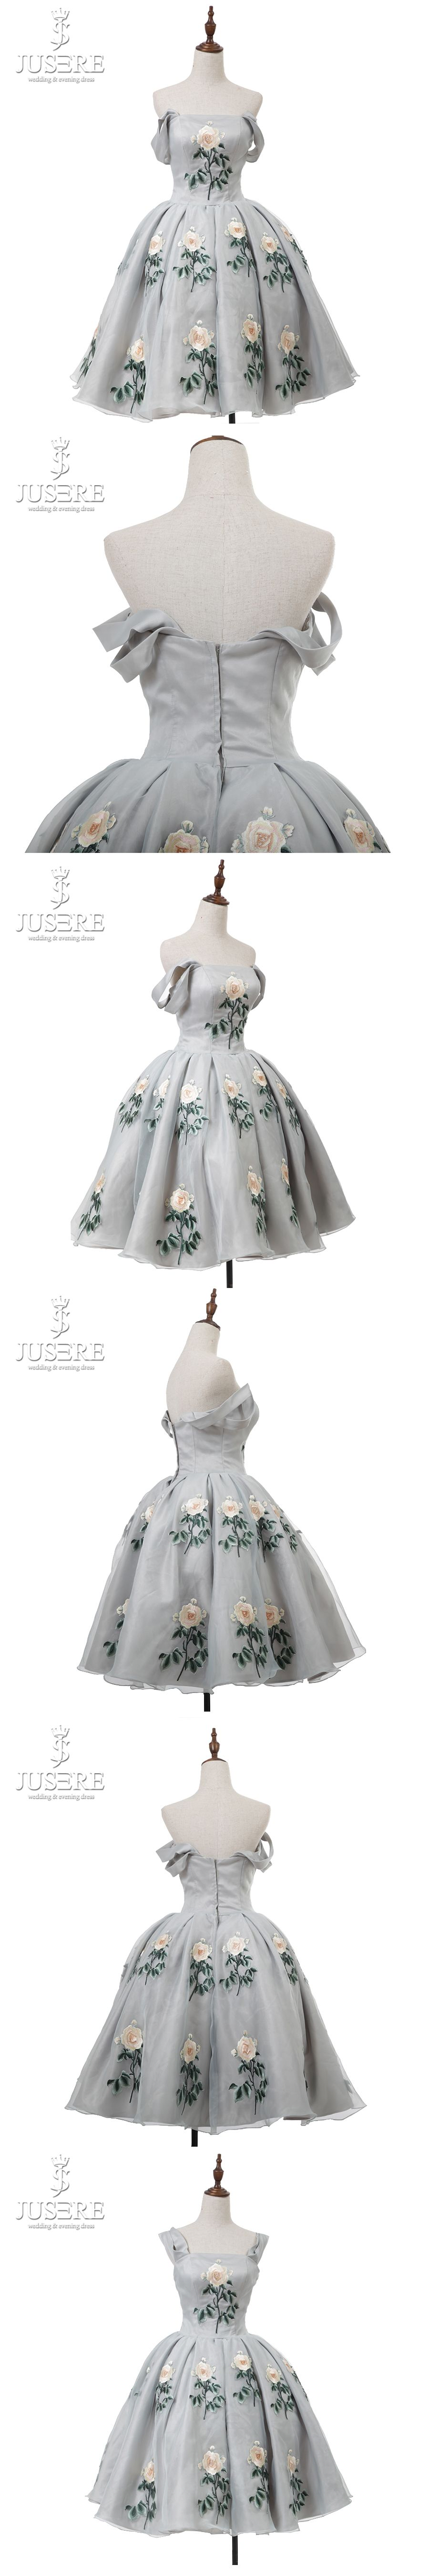 JUSERE Puffy Ball Gown Organza Short Embroidery Zipper up Back Wide